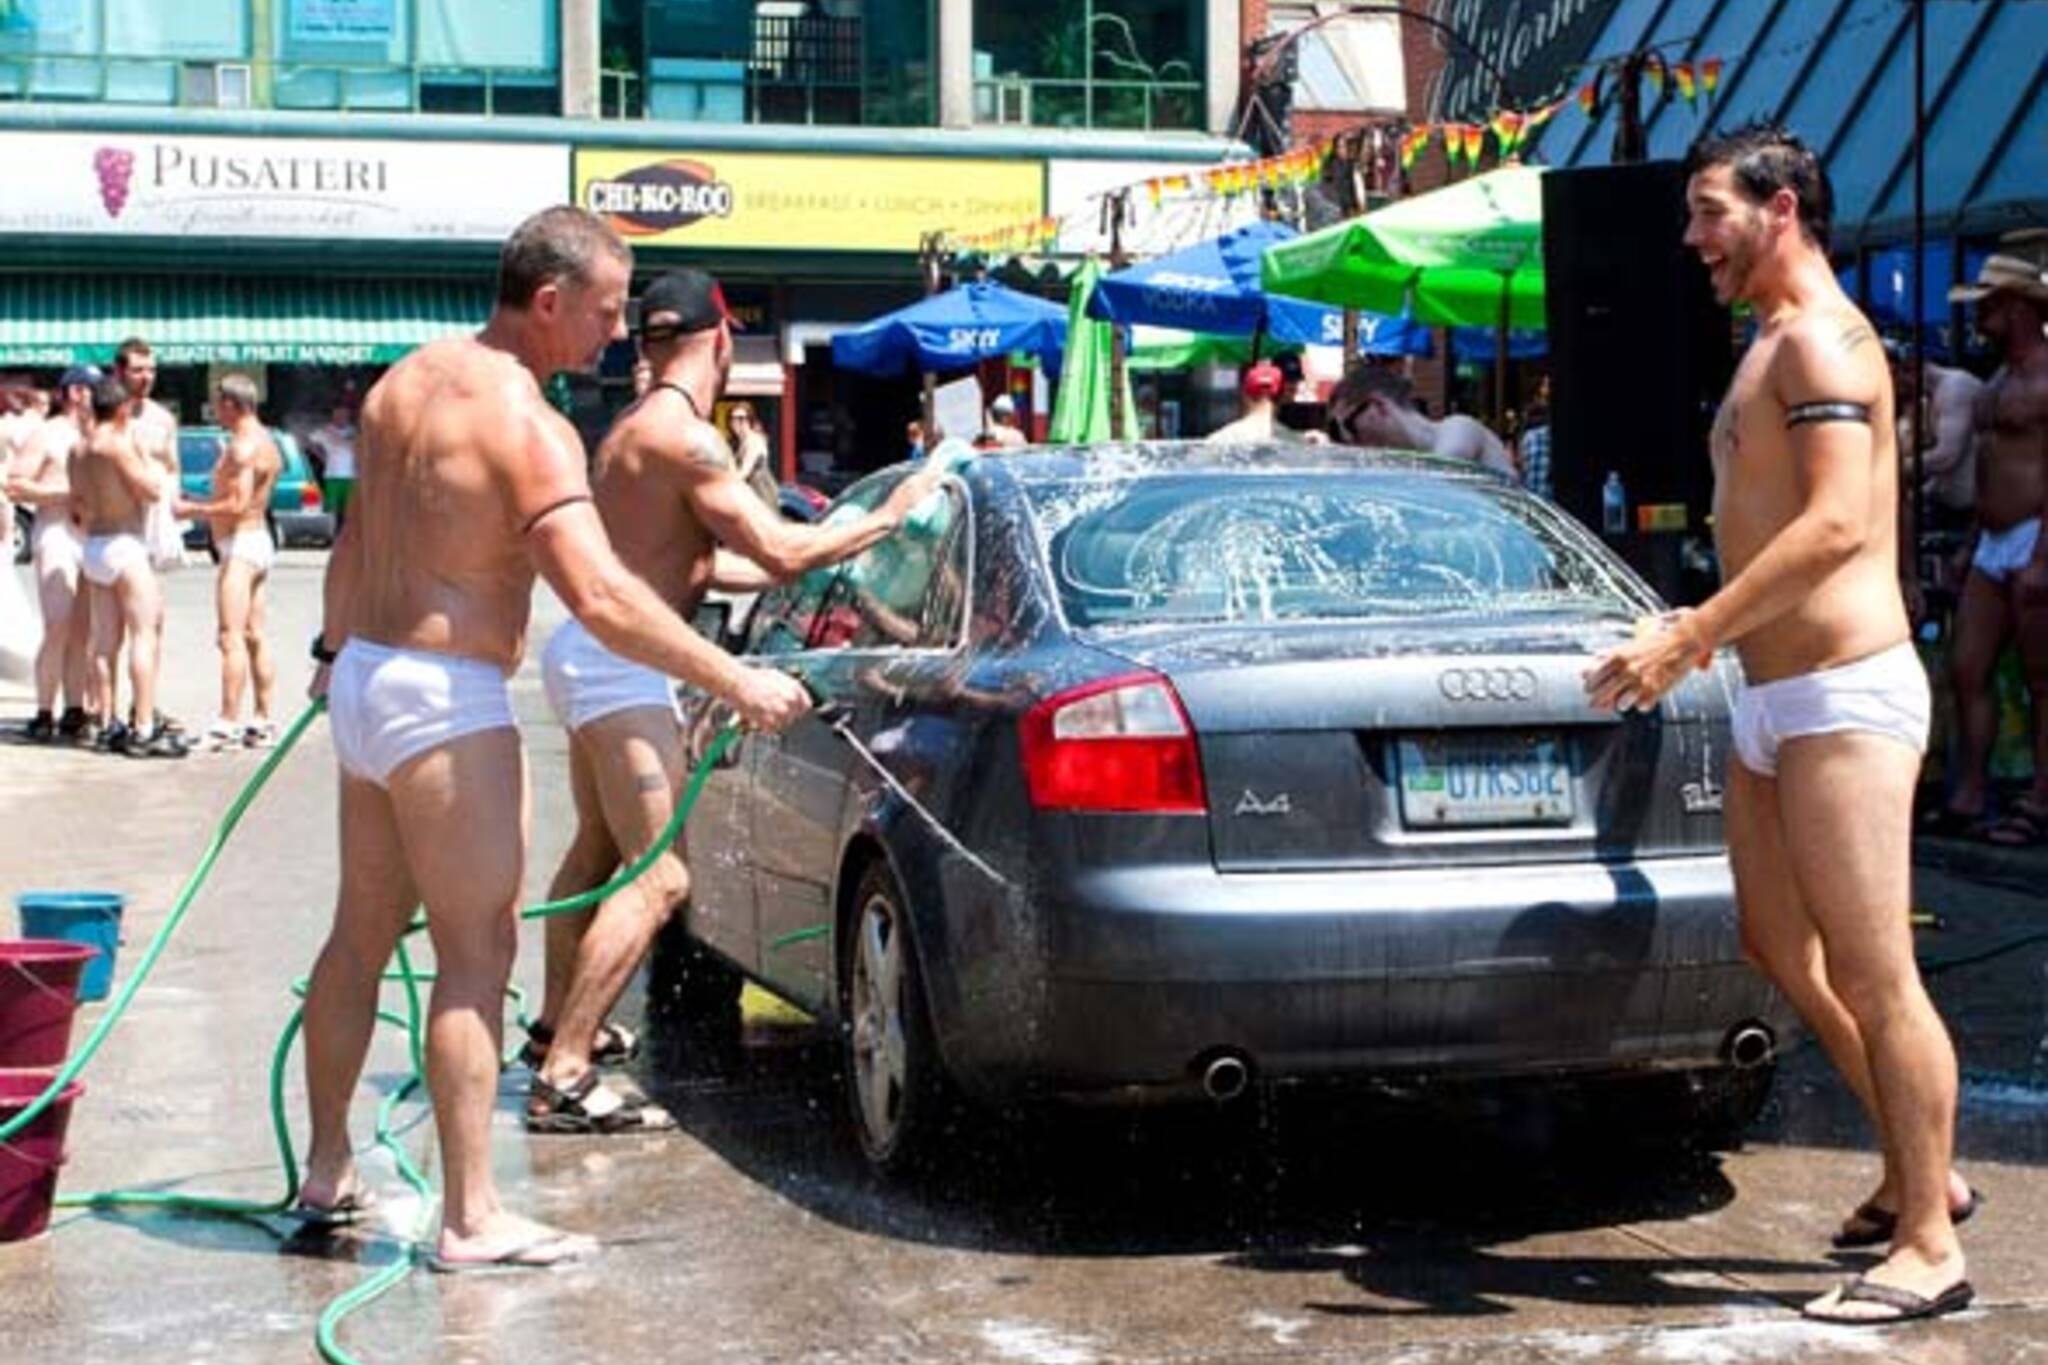 Nude Car wash